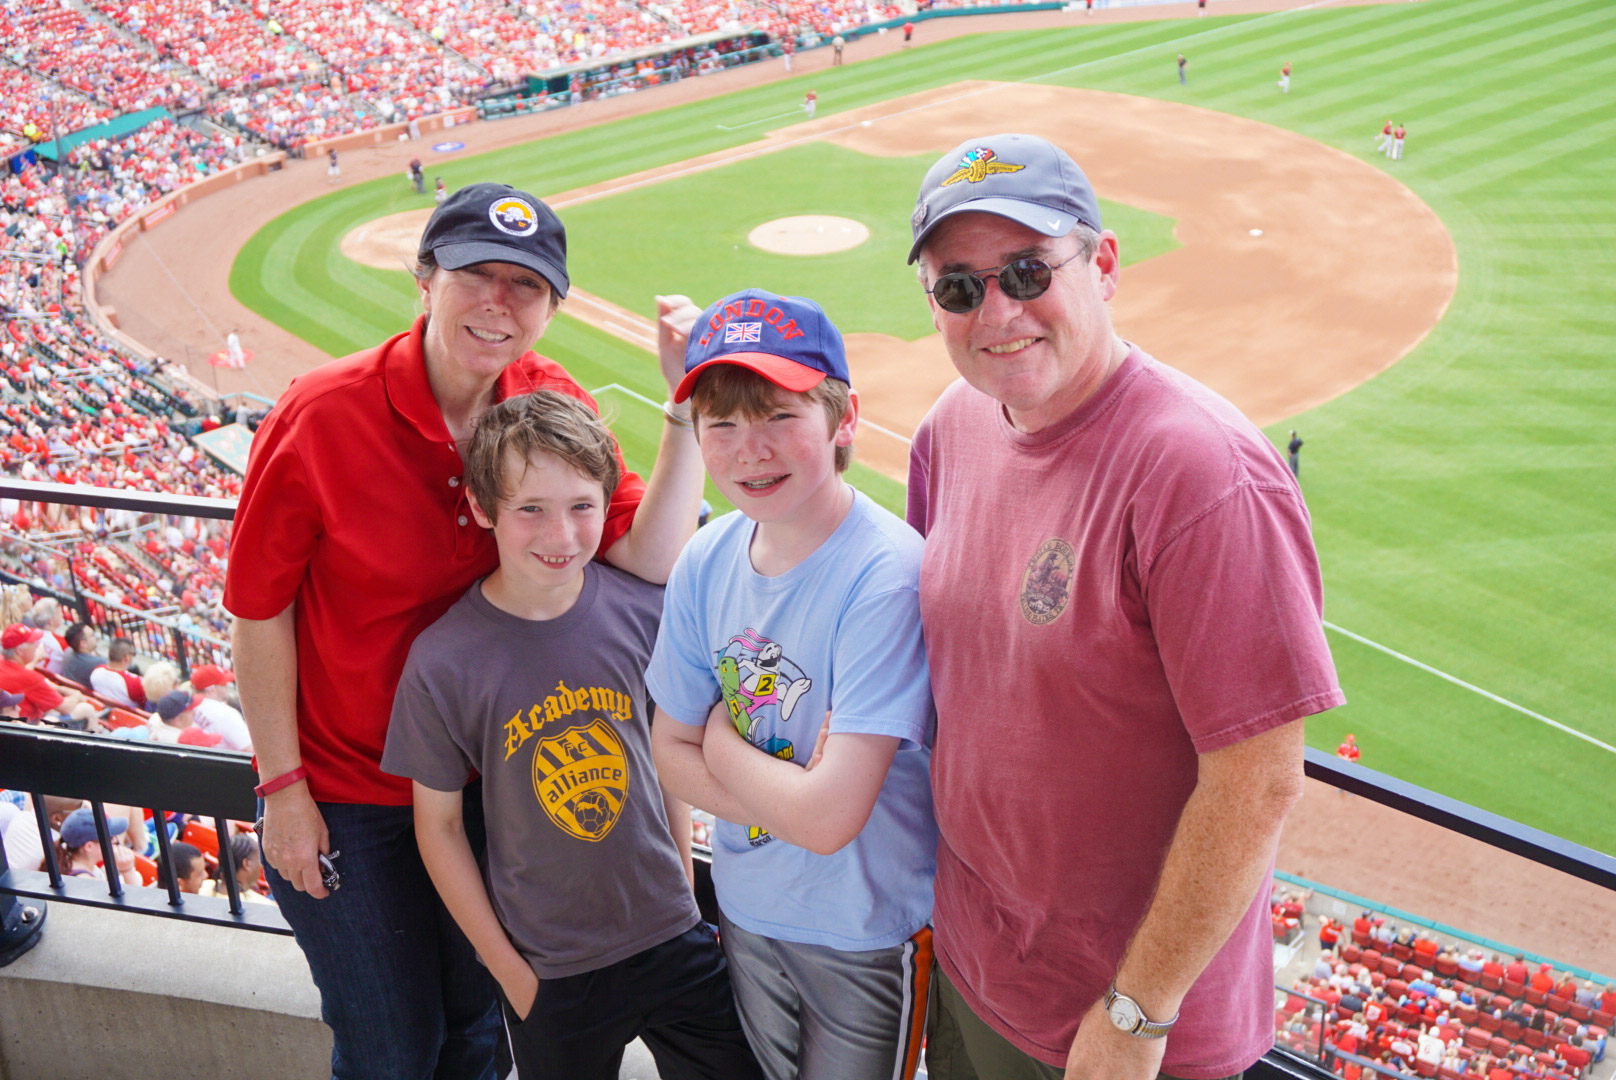 Steadman's at Busch Stadium for a Cardinals game.